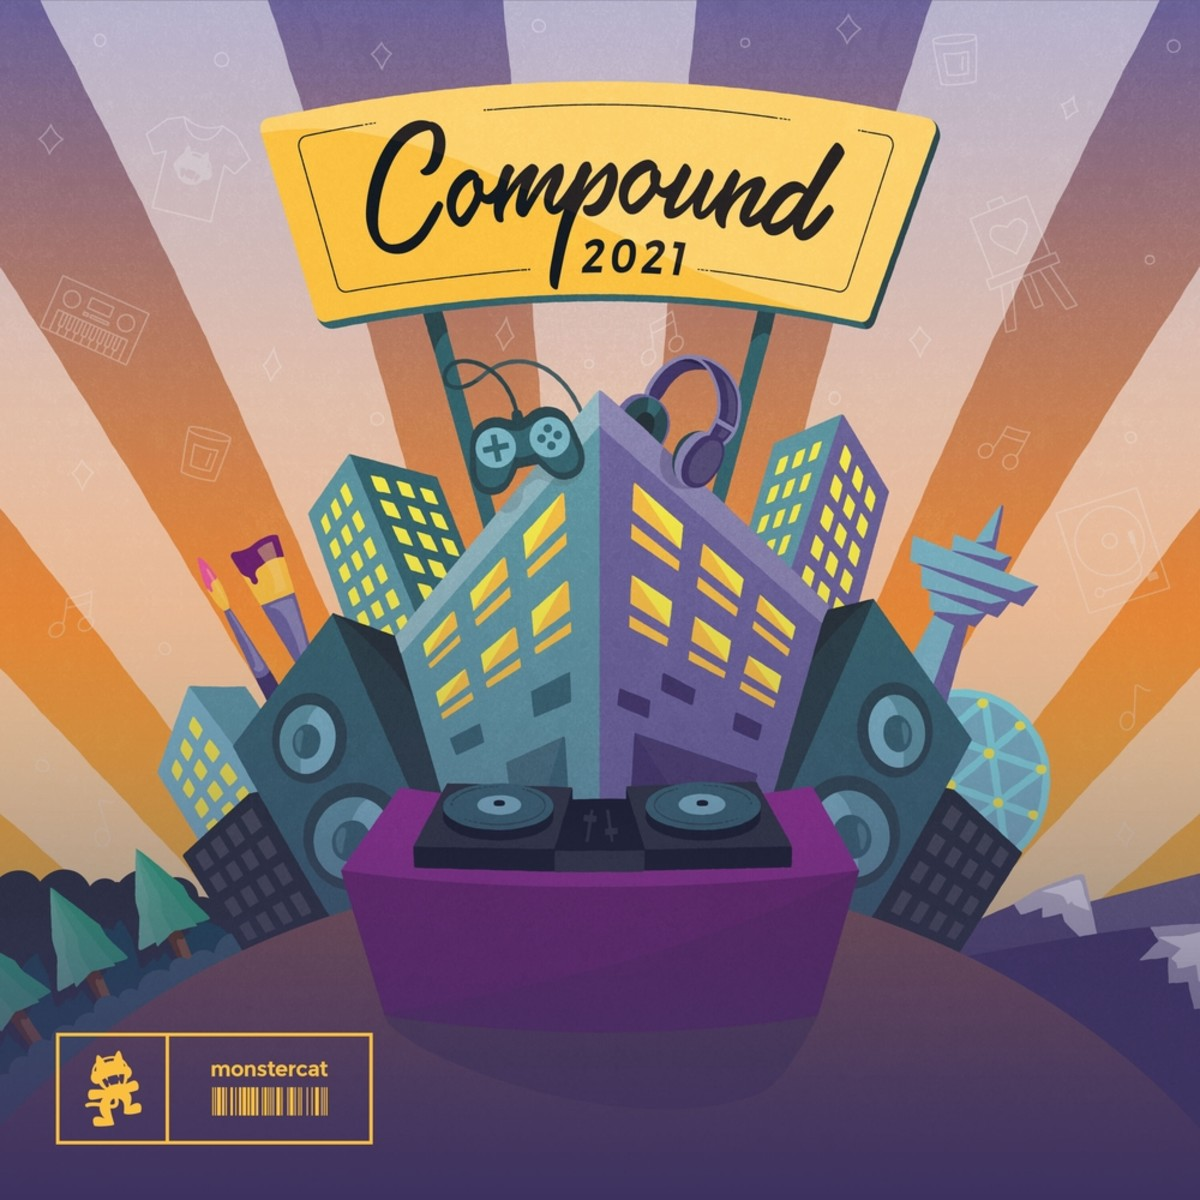 """Artwork for Monstercat and Westwood Recordings' """"Compound 2021"""" compilation."""